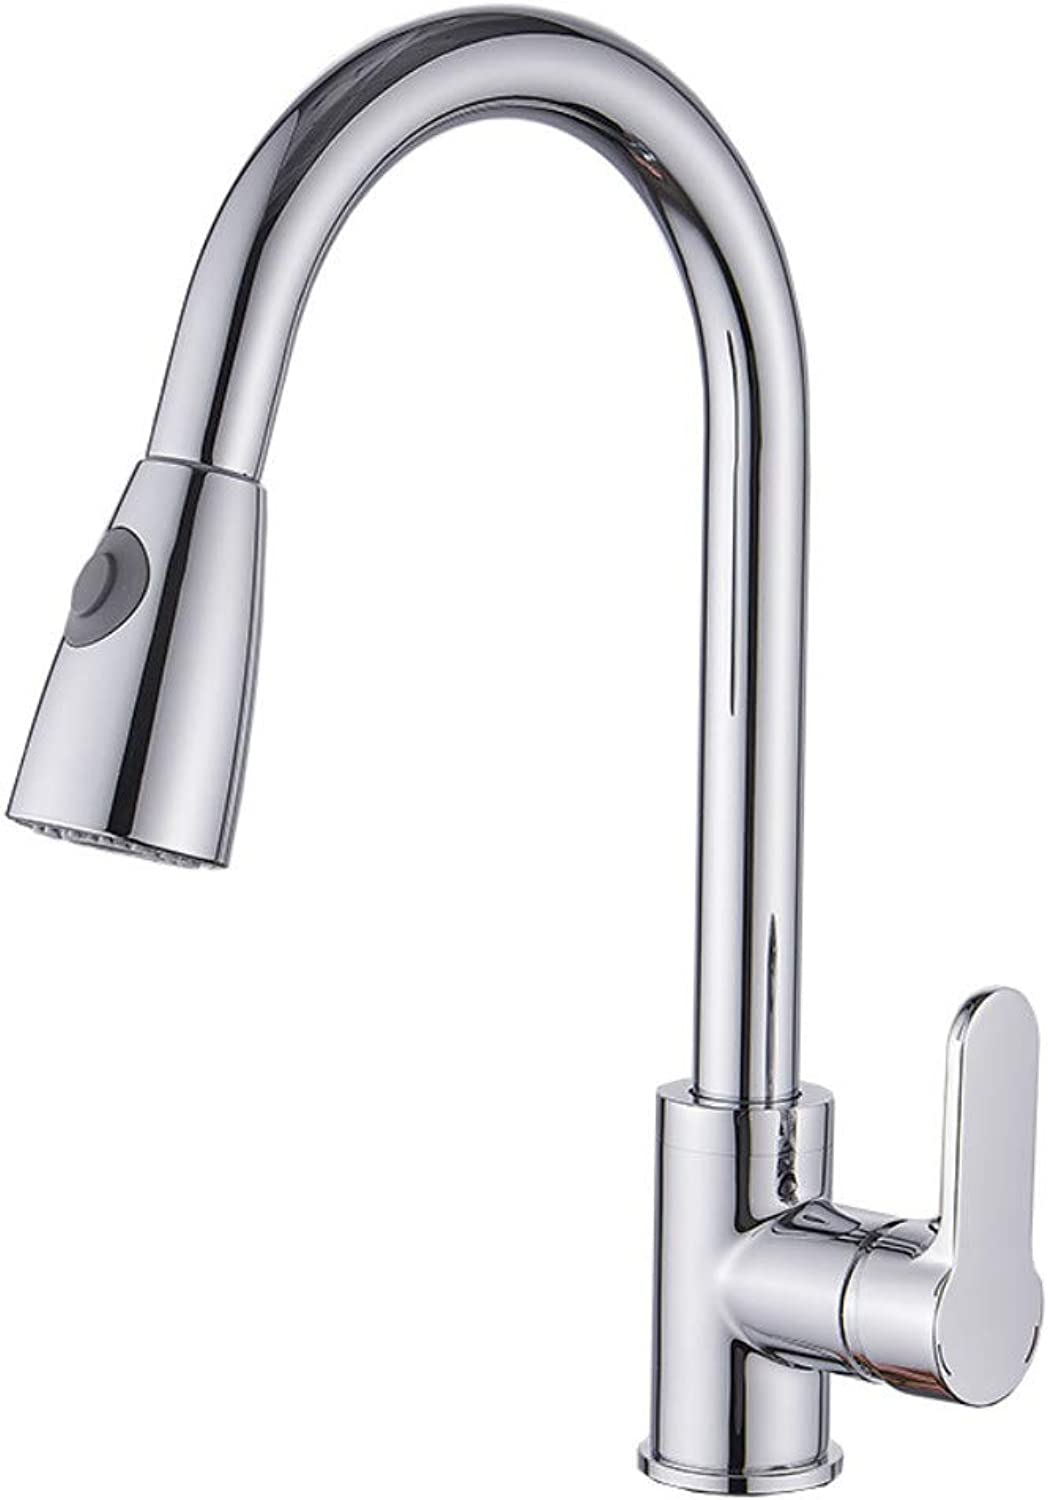 Kitchen Taps Bathroom Sink Tapscopper Plating Large Curved Hot and Cold Pull Faucet Kitchen Faucet Sink Faucet